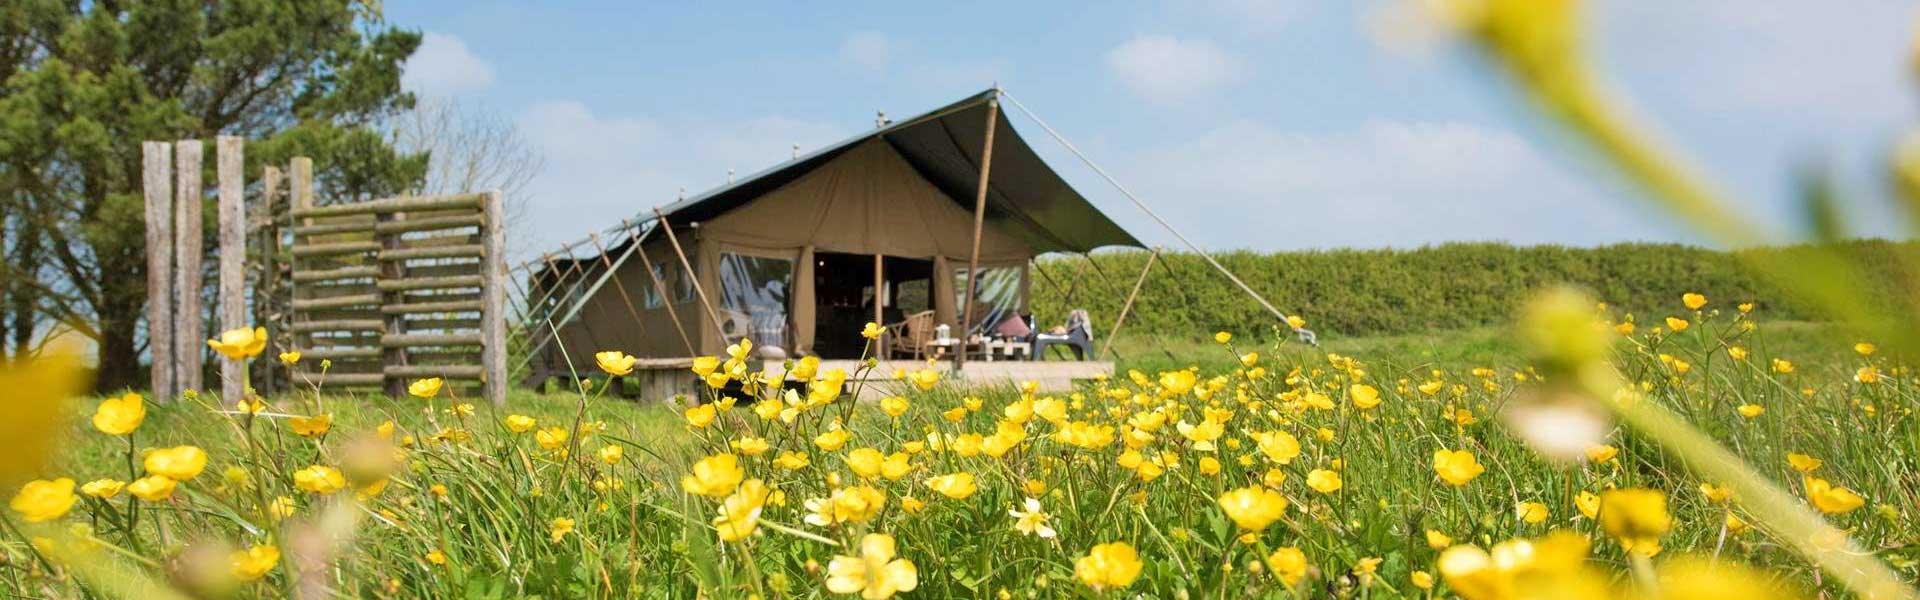 Classic Glamping - The wild in comfort and luxury.